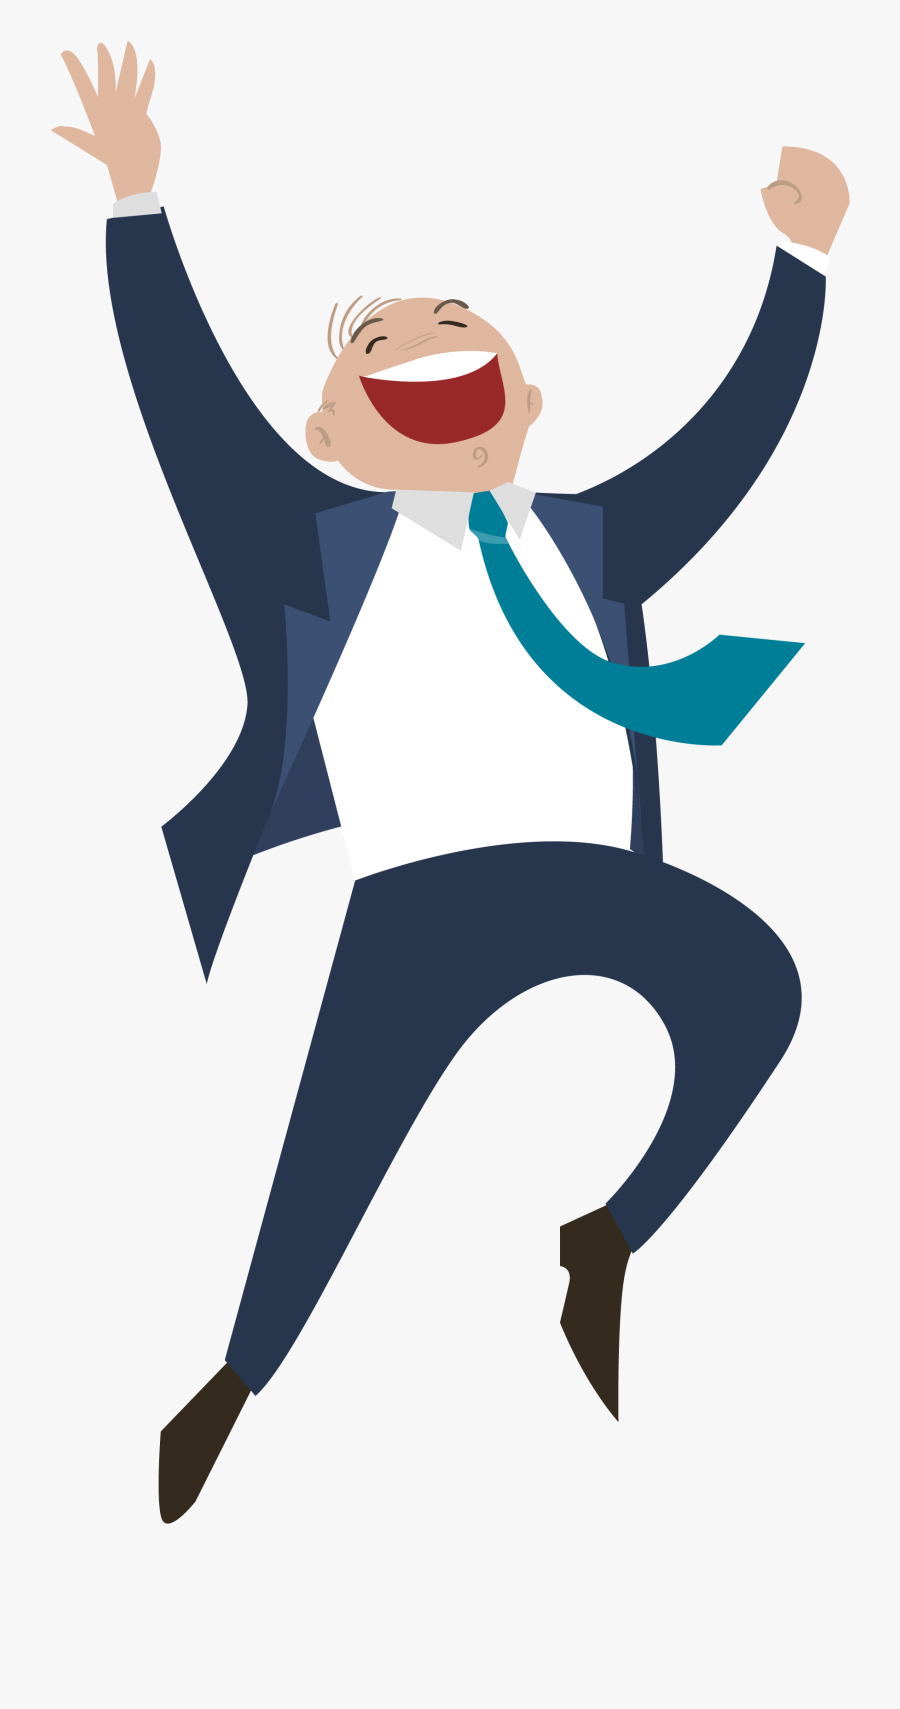 Transparent Man Jumping Png - Clipart Happy People Png, Transparent Clipart